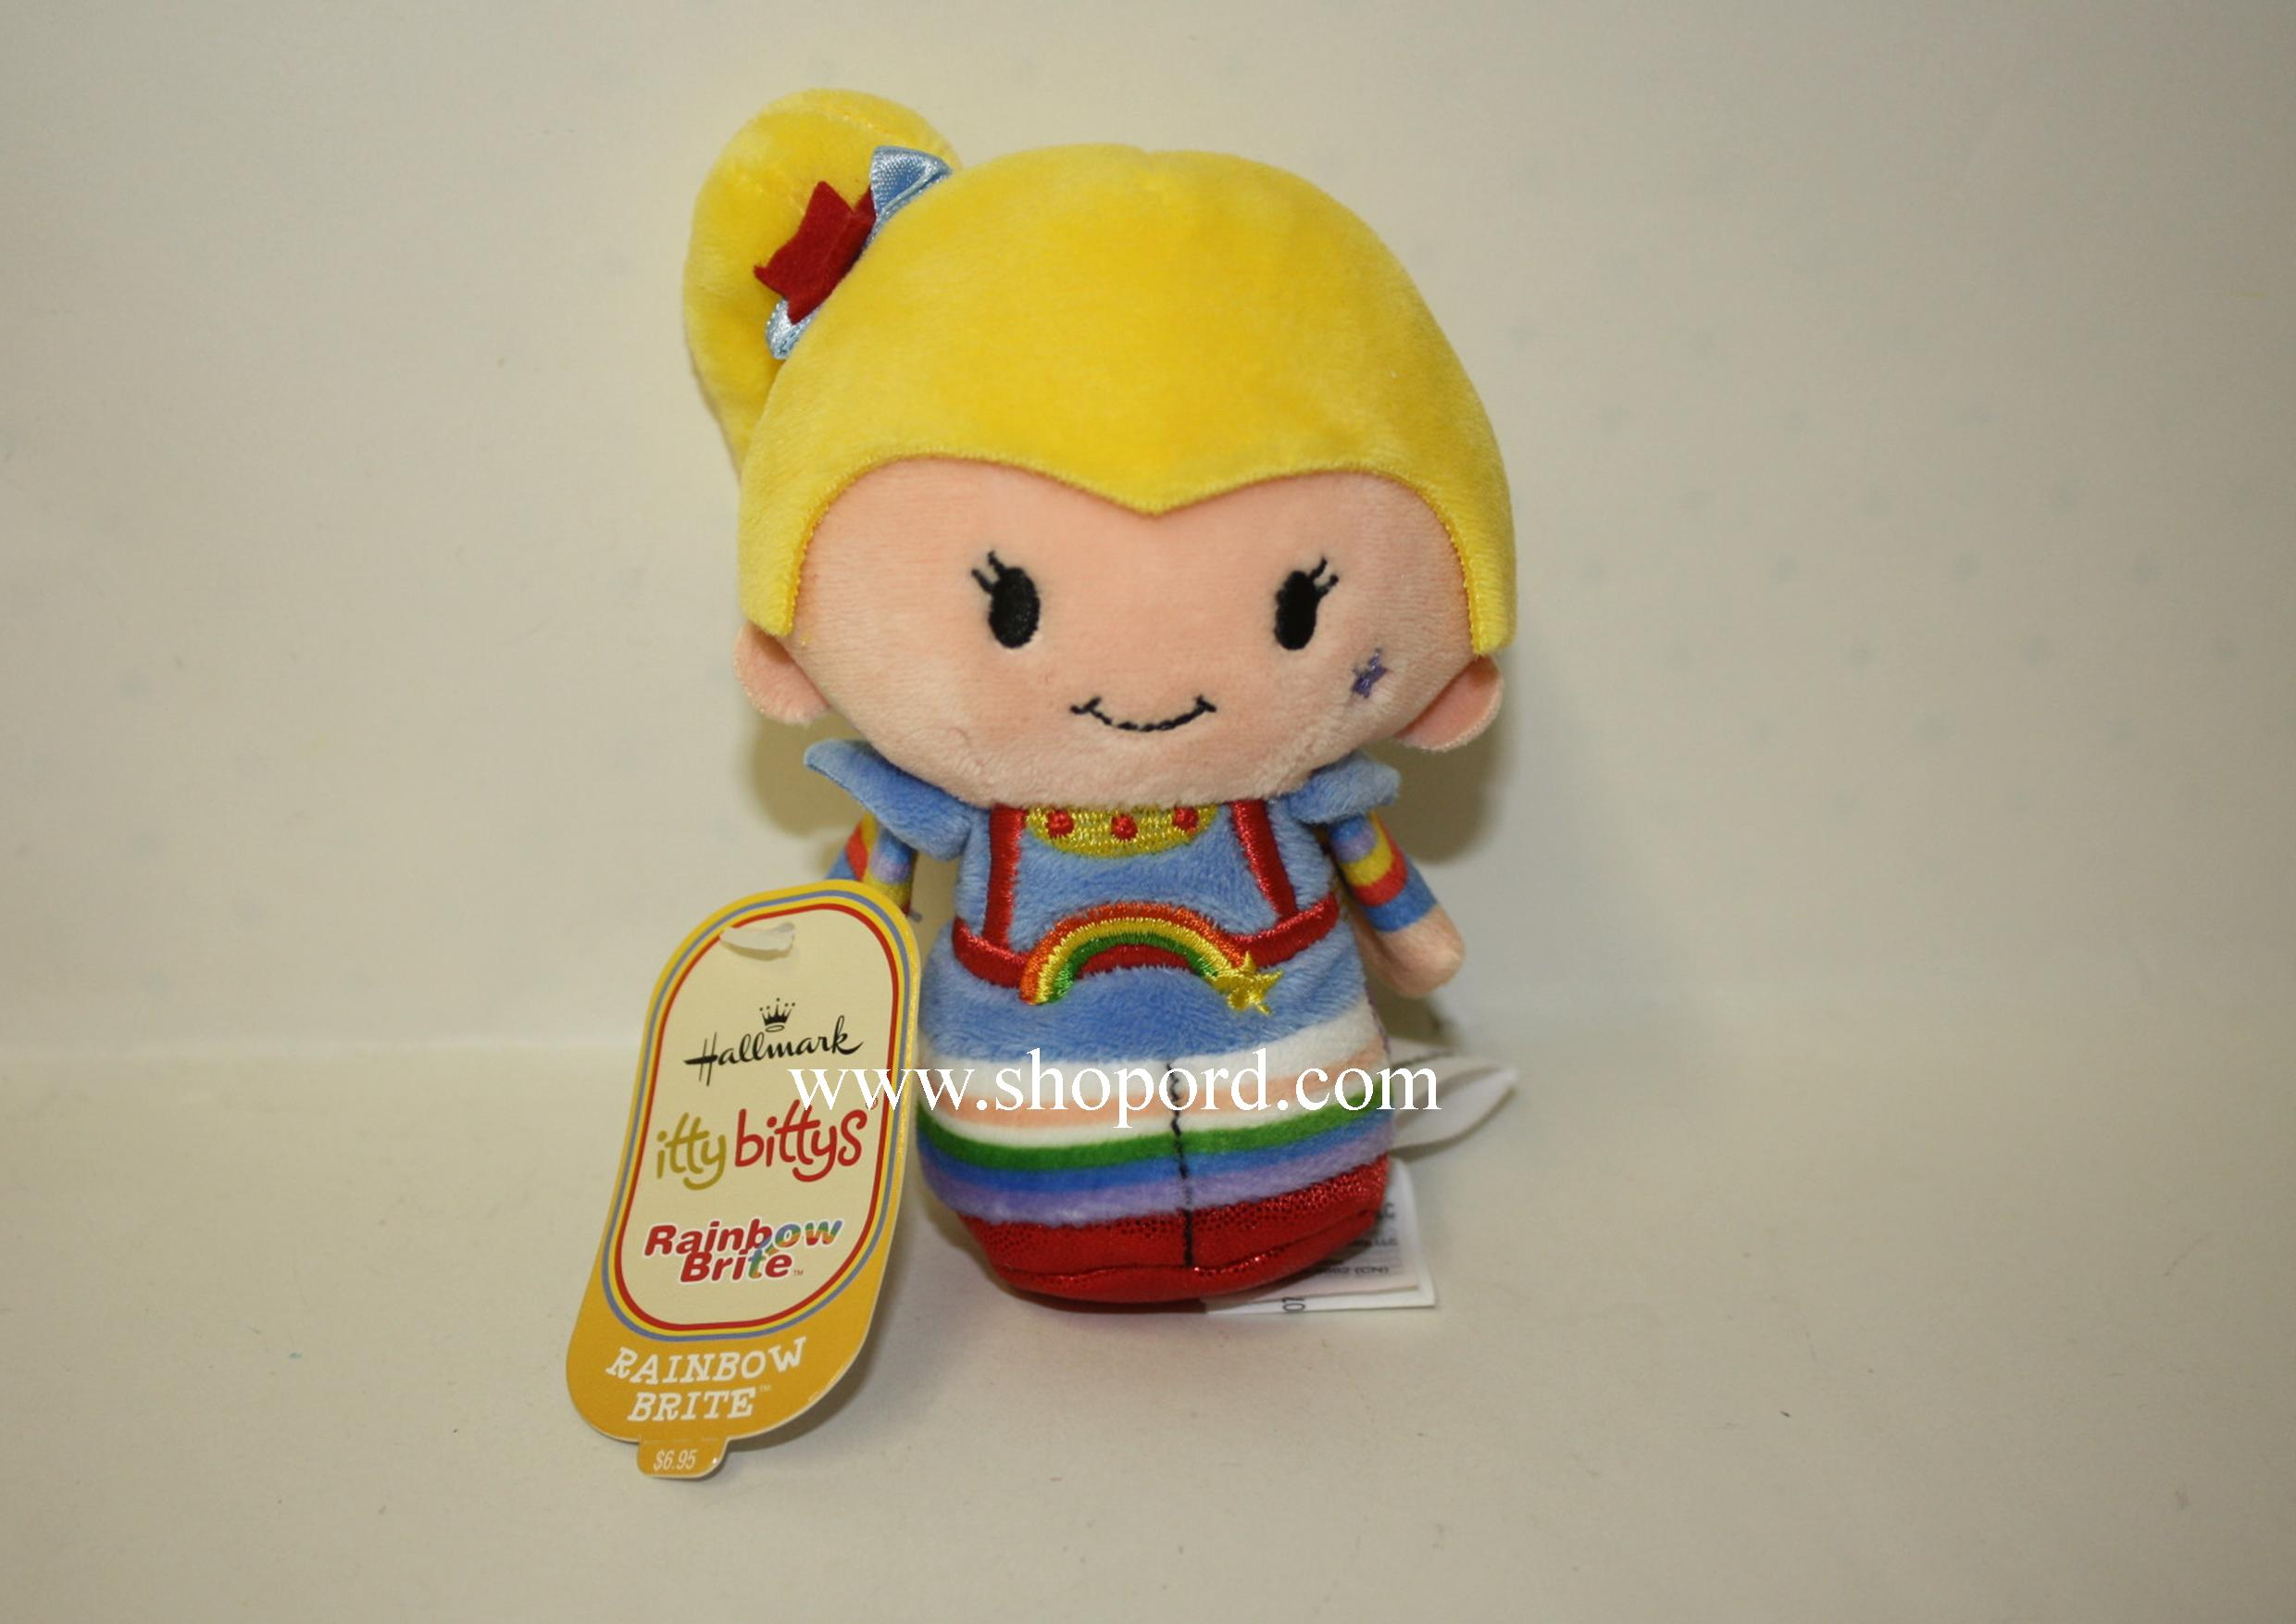 Hallmark itty bitty Rainbow Brite Plush KID3427